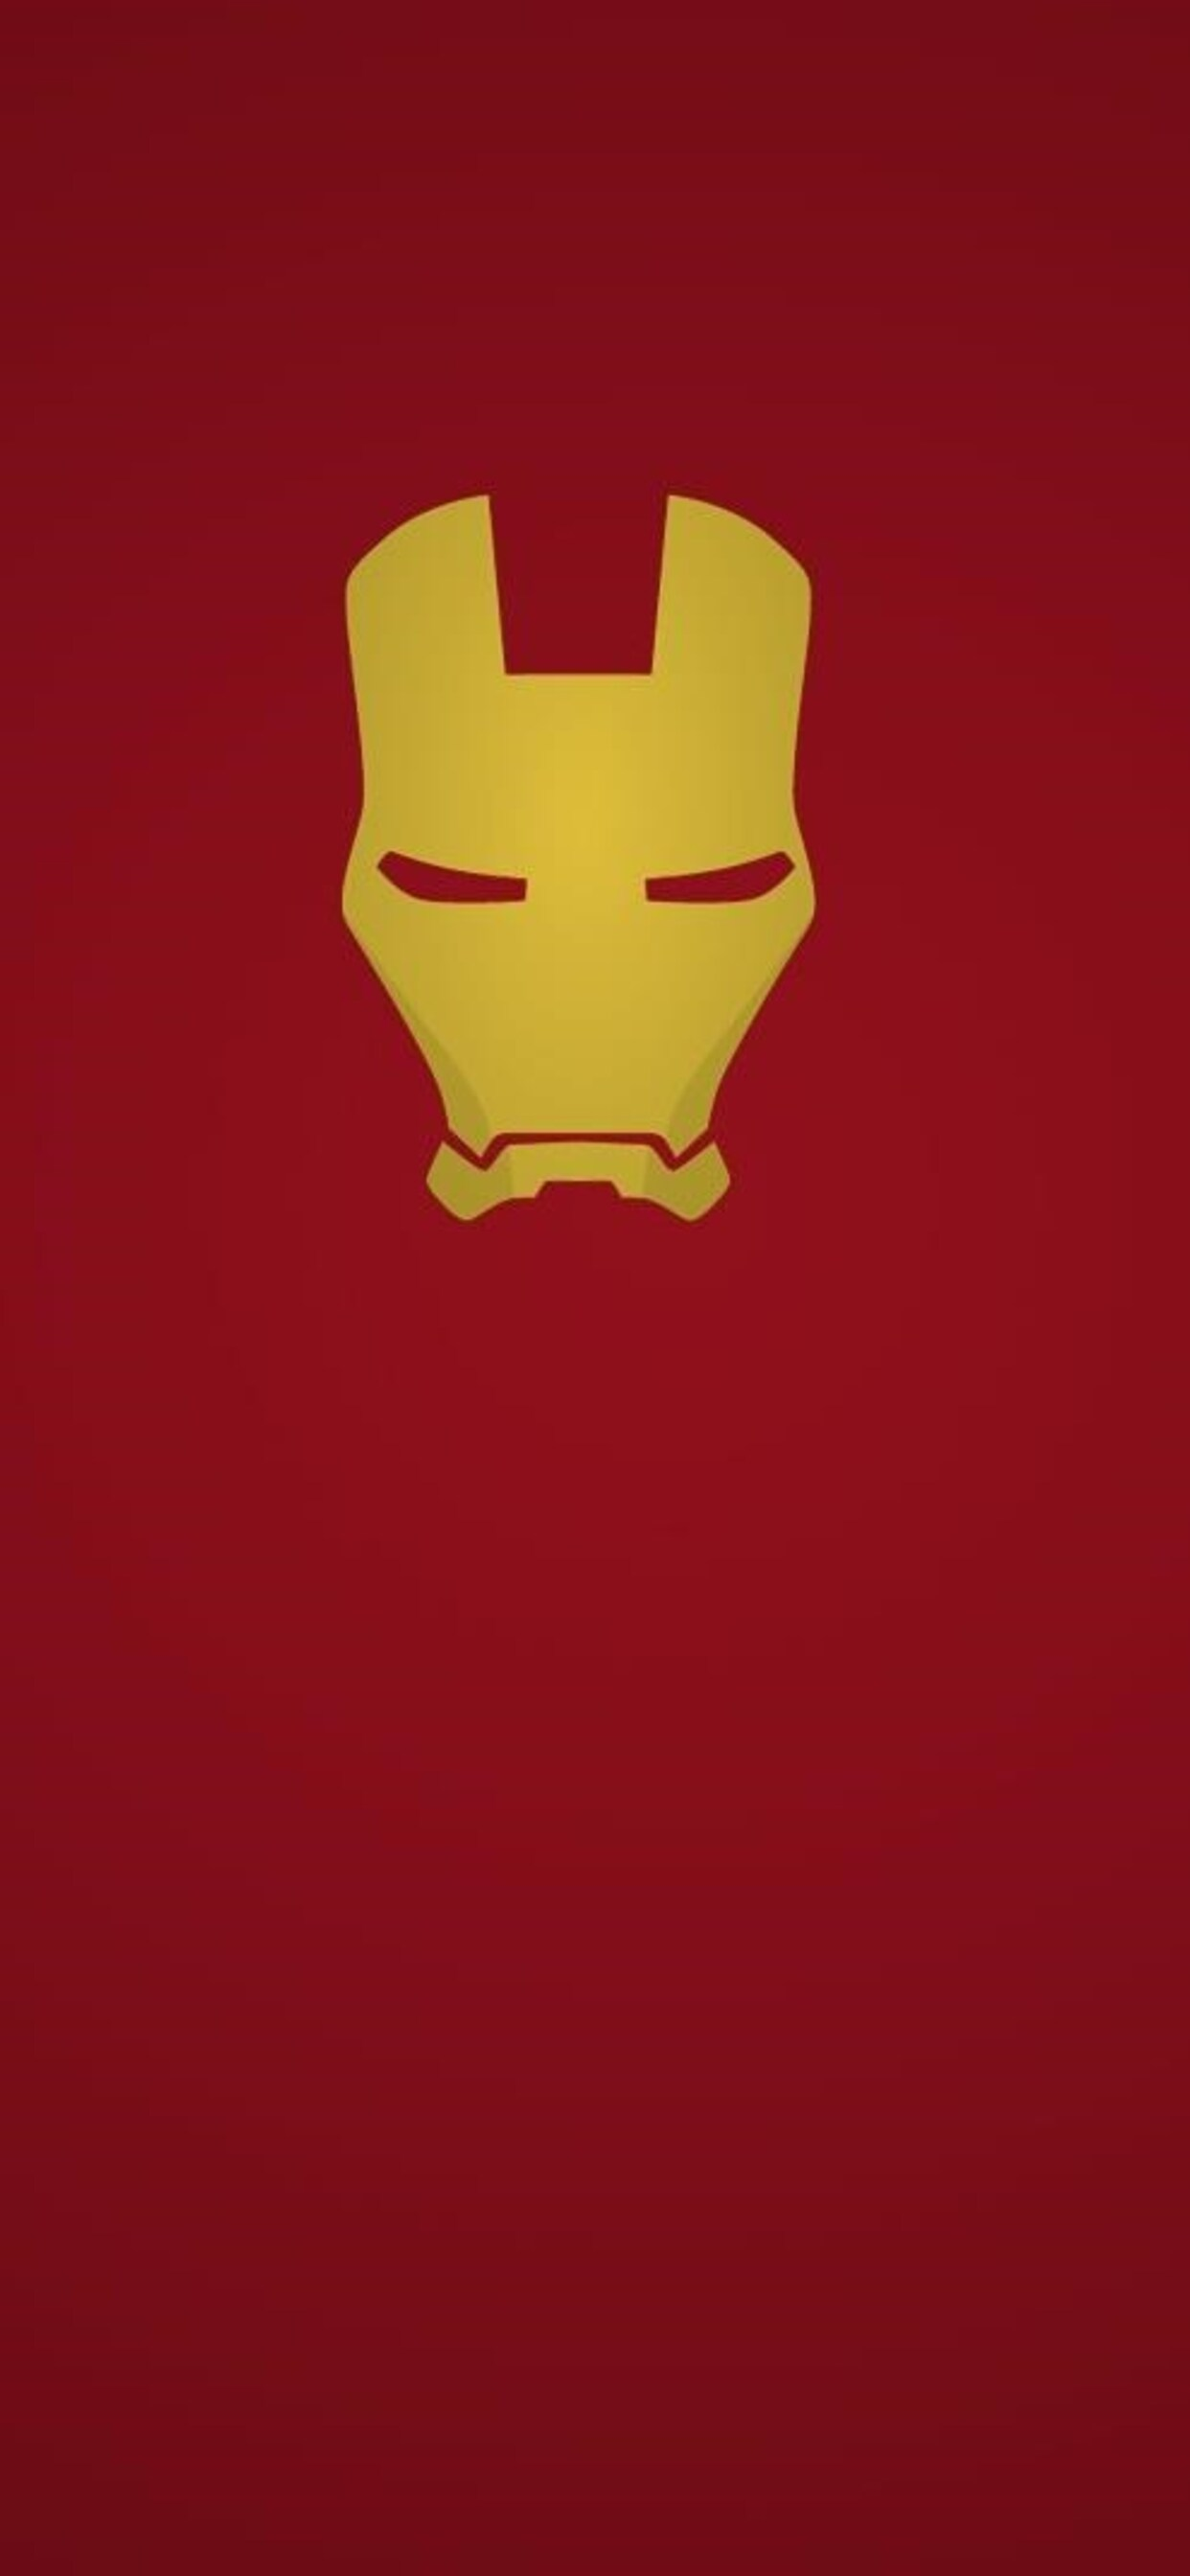 1242x2688 Iron Man Simple 2 Iphone Xs Max Hd 4k Wallpapers Images